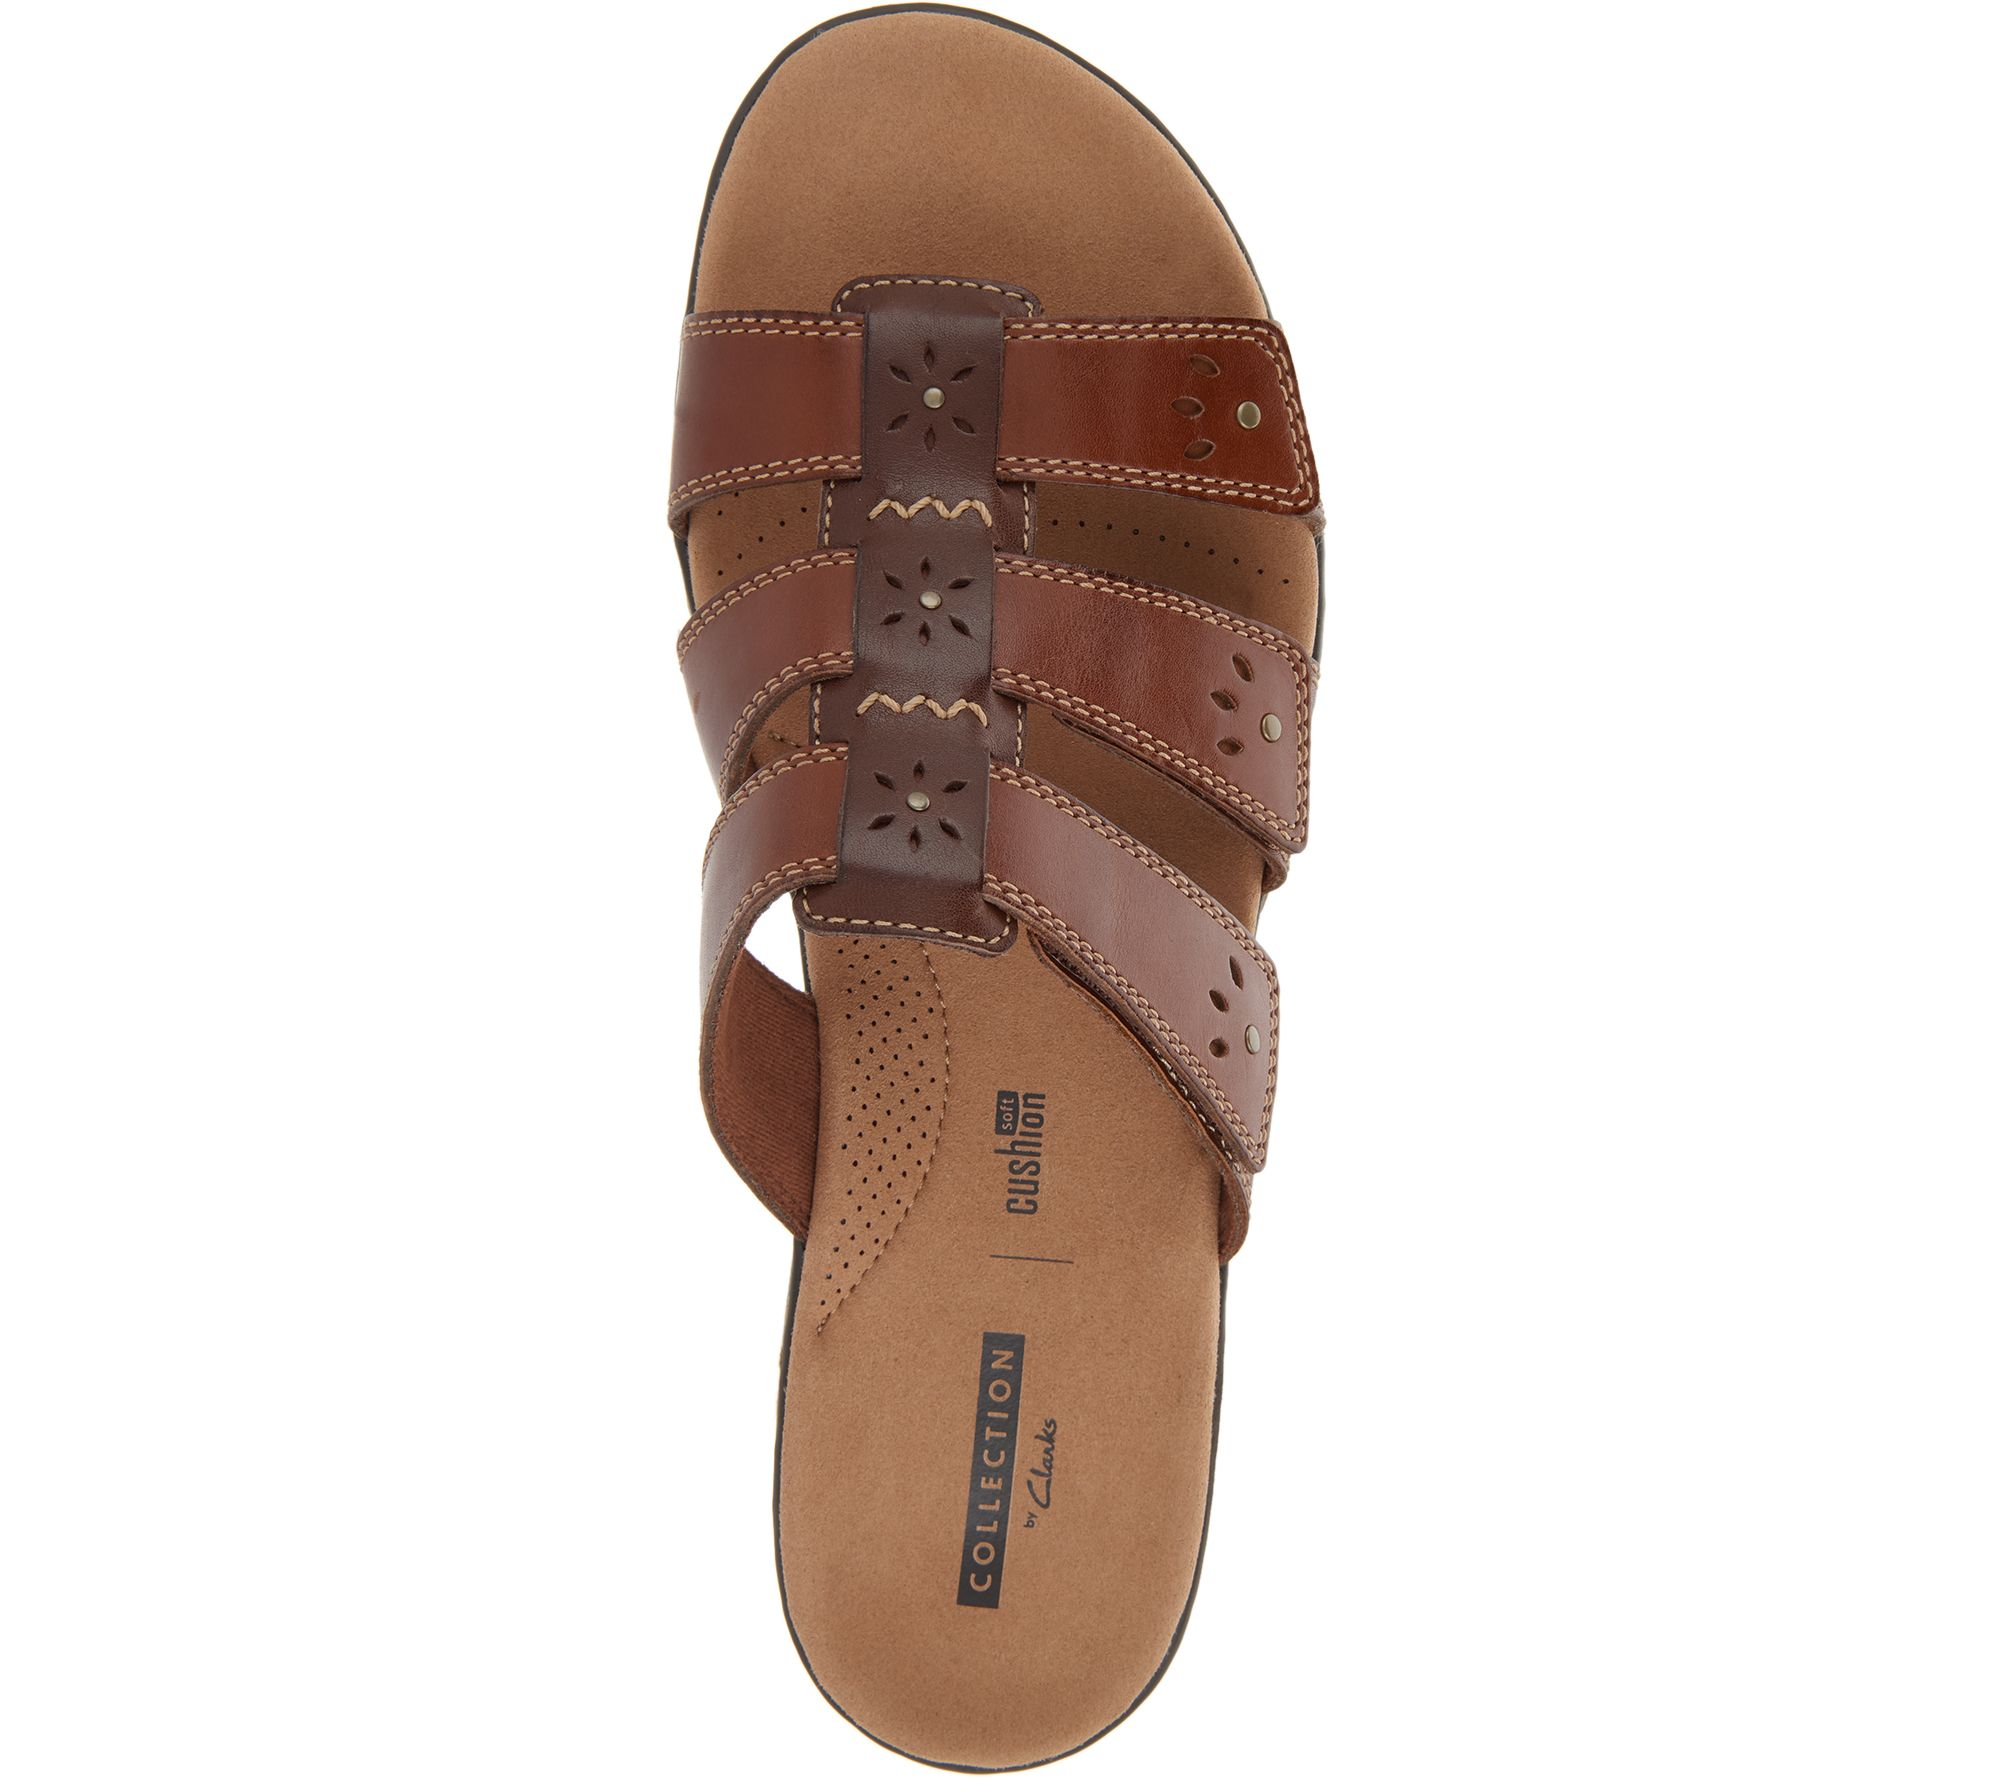 e593fdbb2330 Clarks Collection Leather Slide Sandals - Leisa Spring - Page 1 — QVC.com